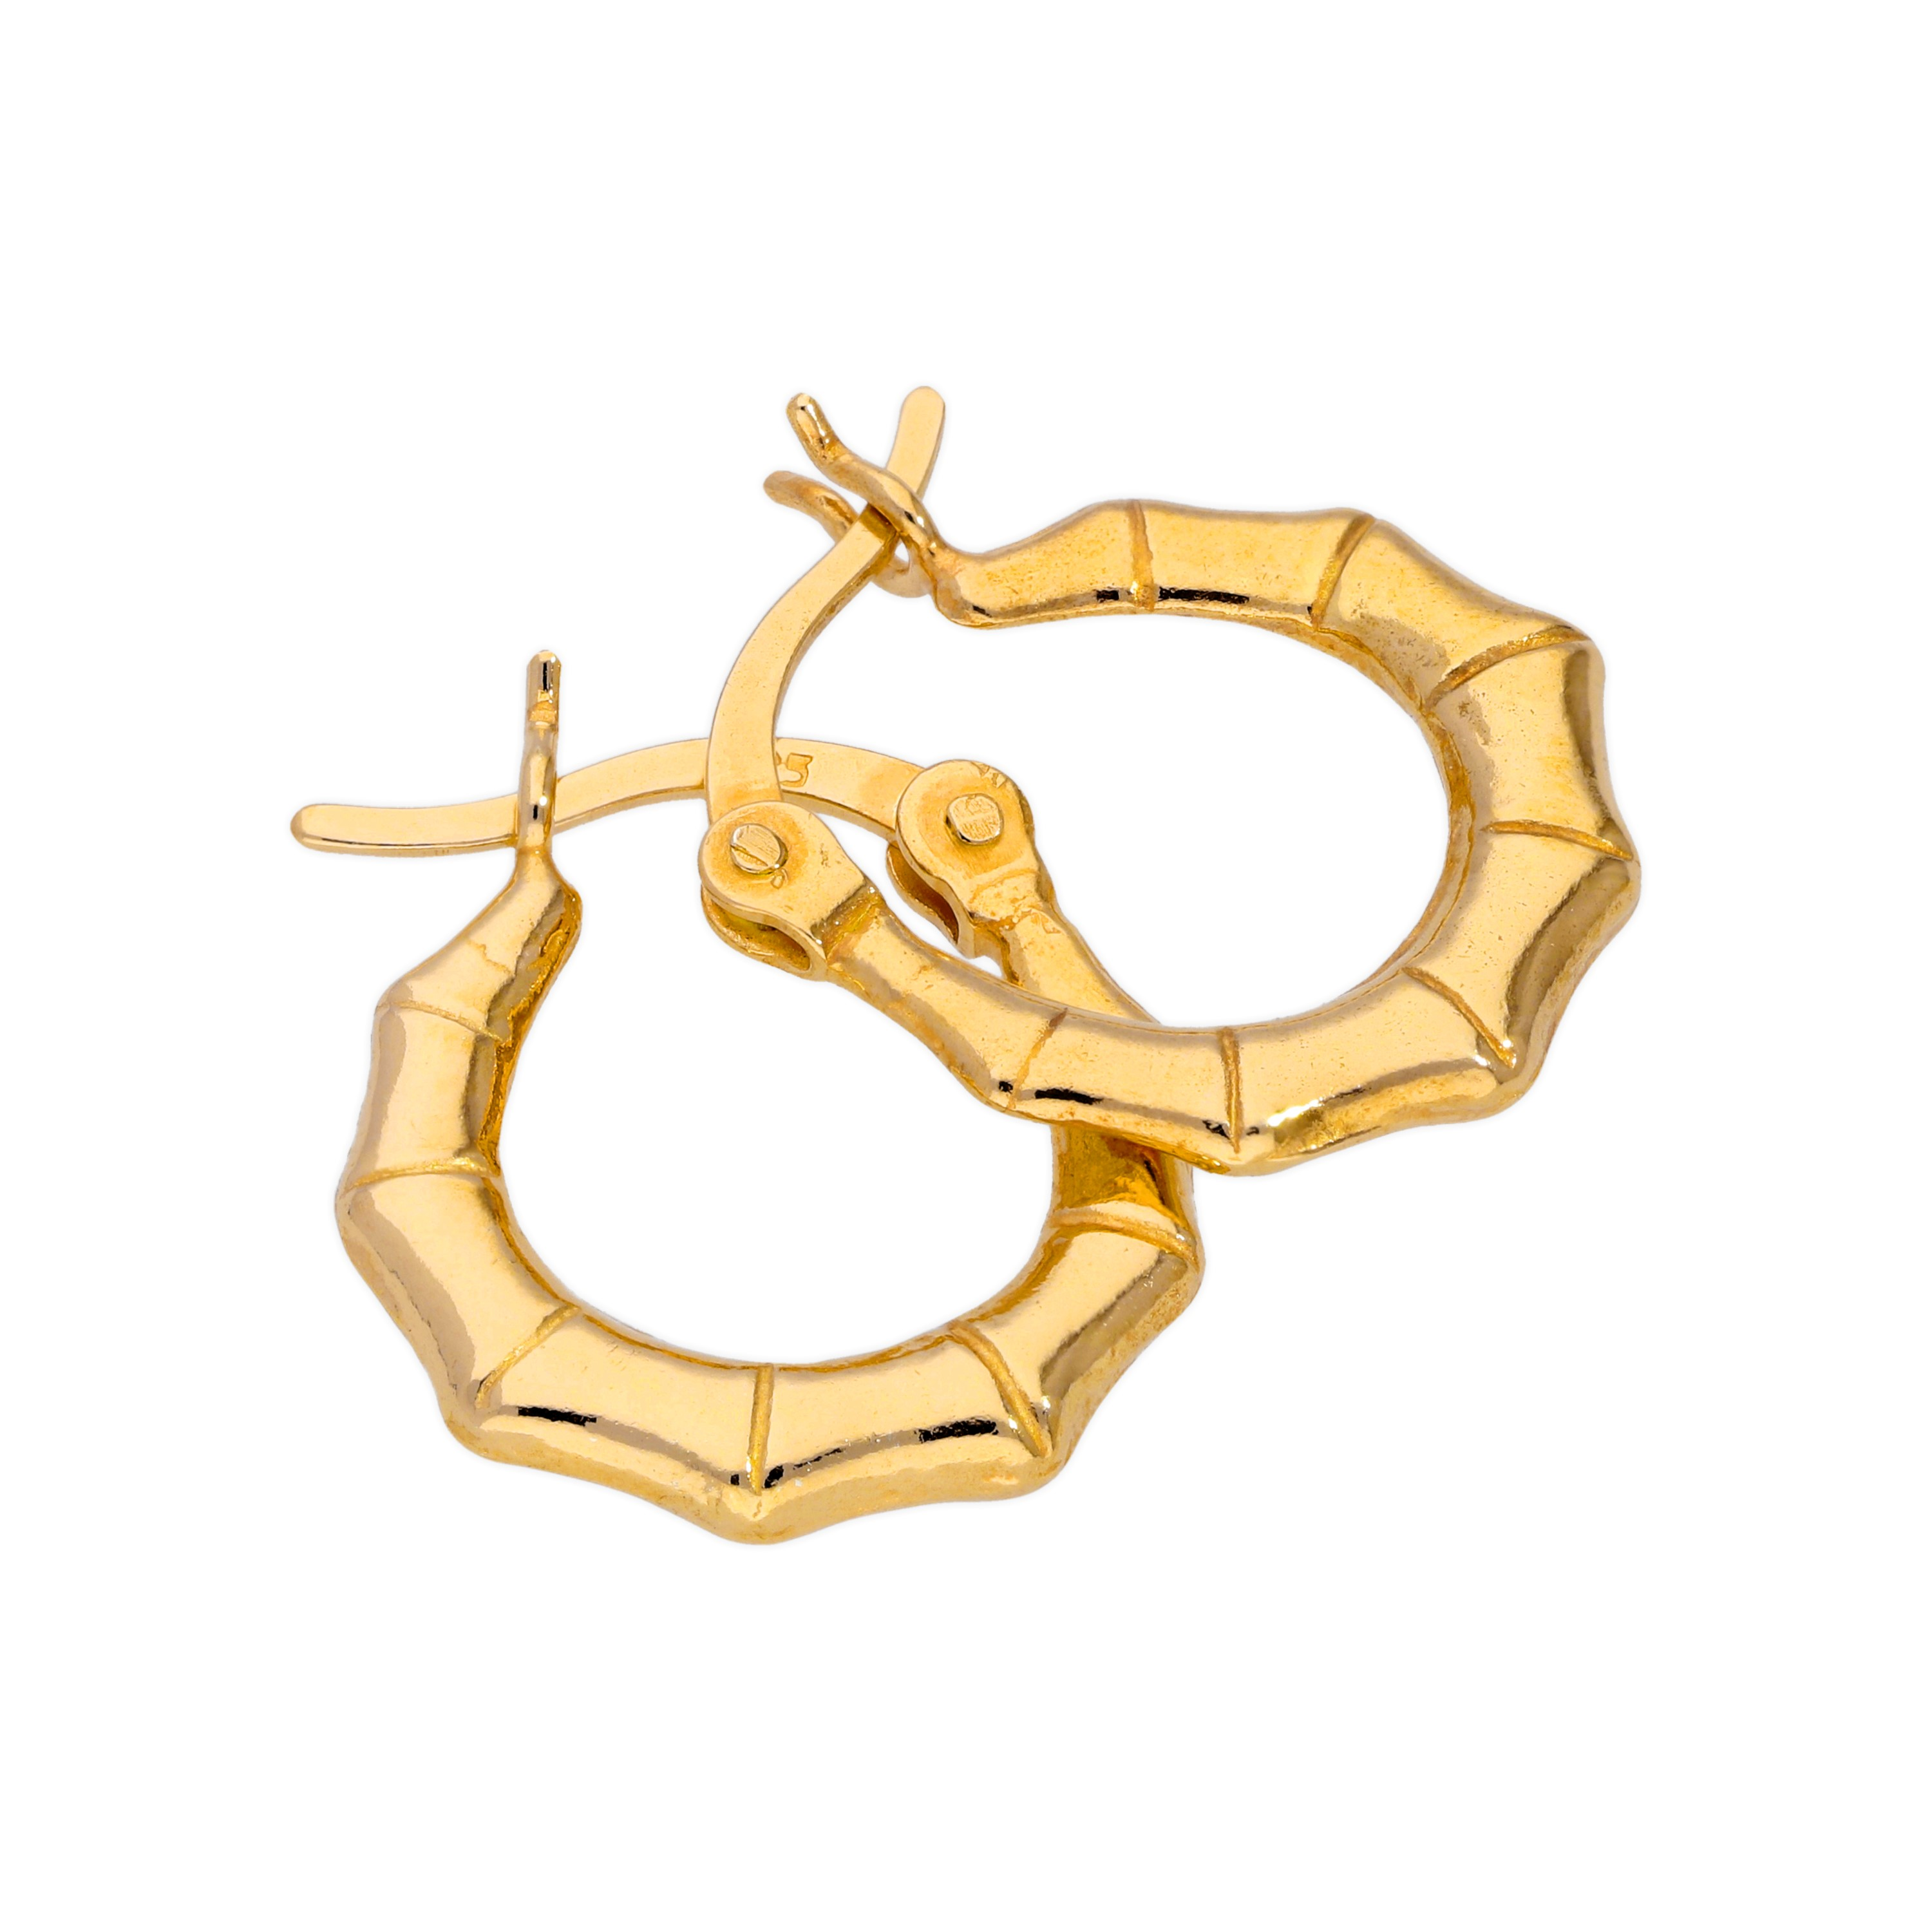 62f0bdbc9 Gold Plated Sterling Silver 13mm Hoop Creole Earrings 5057023173773 ...